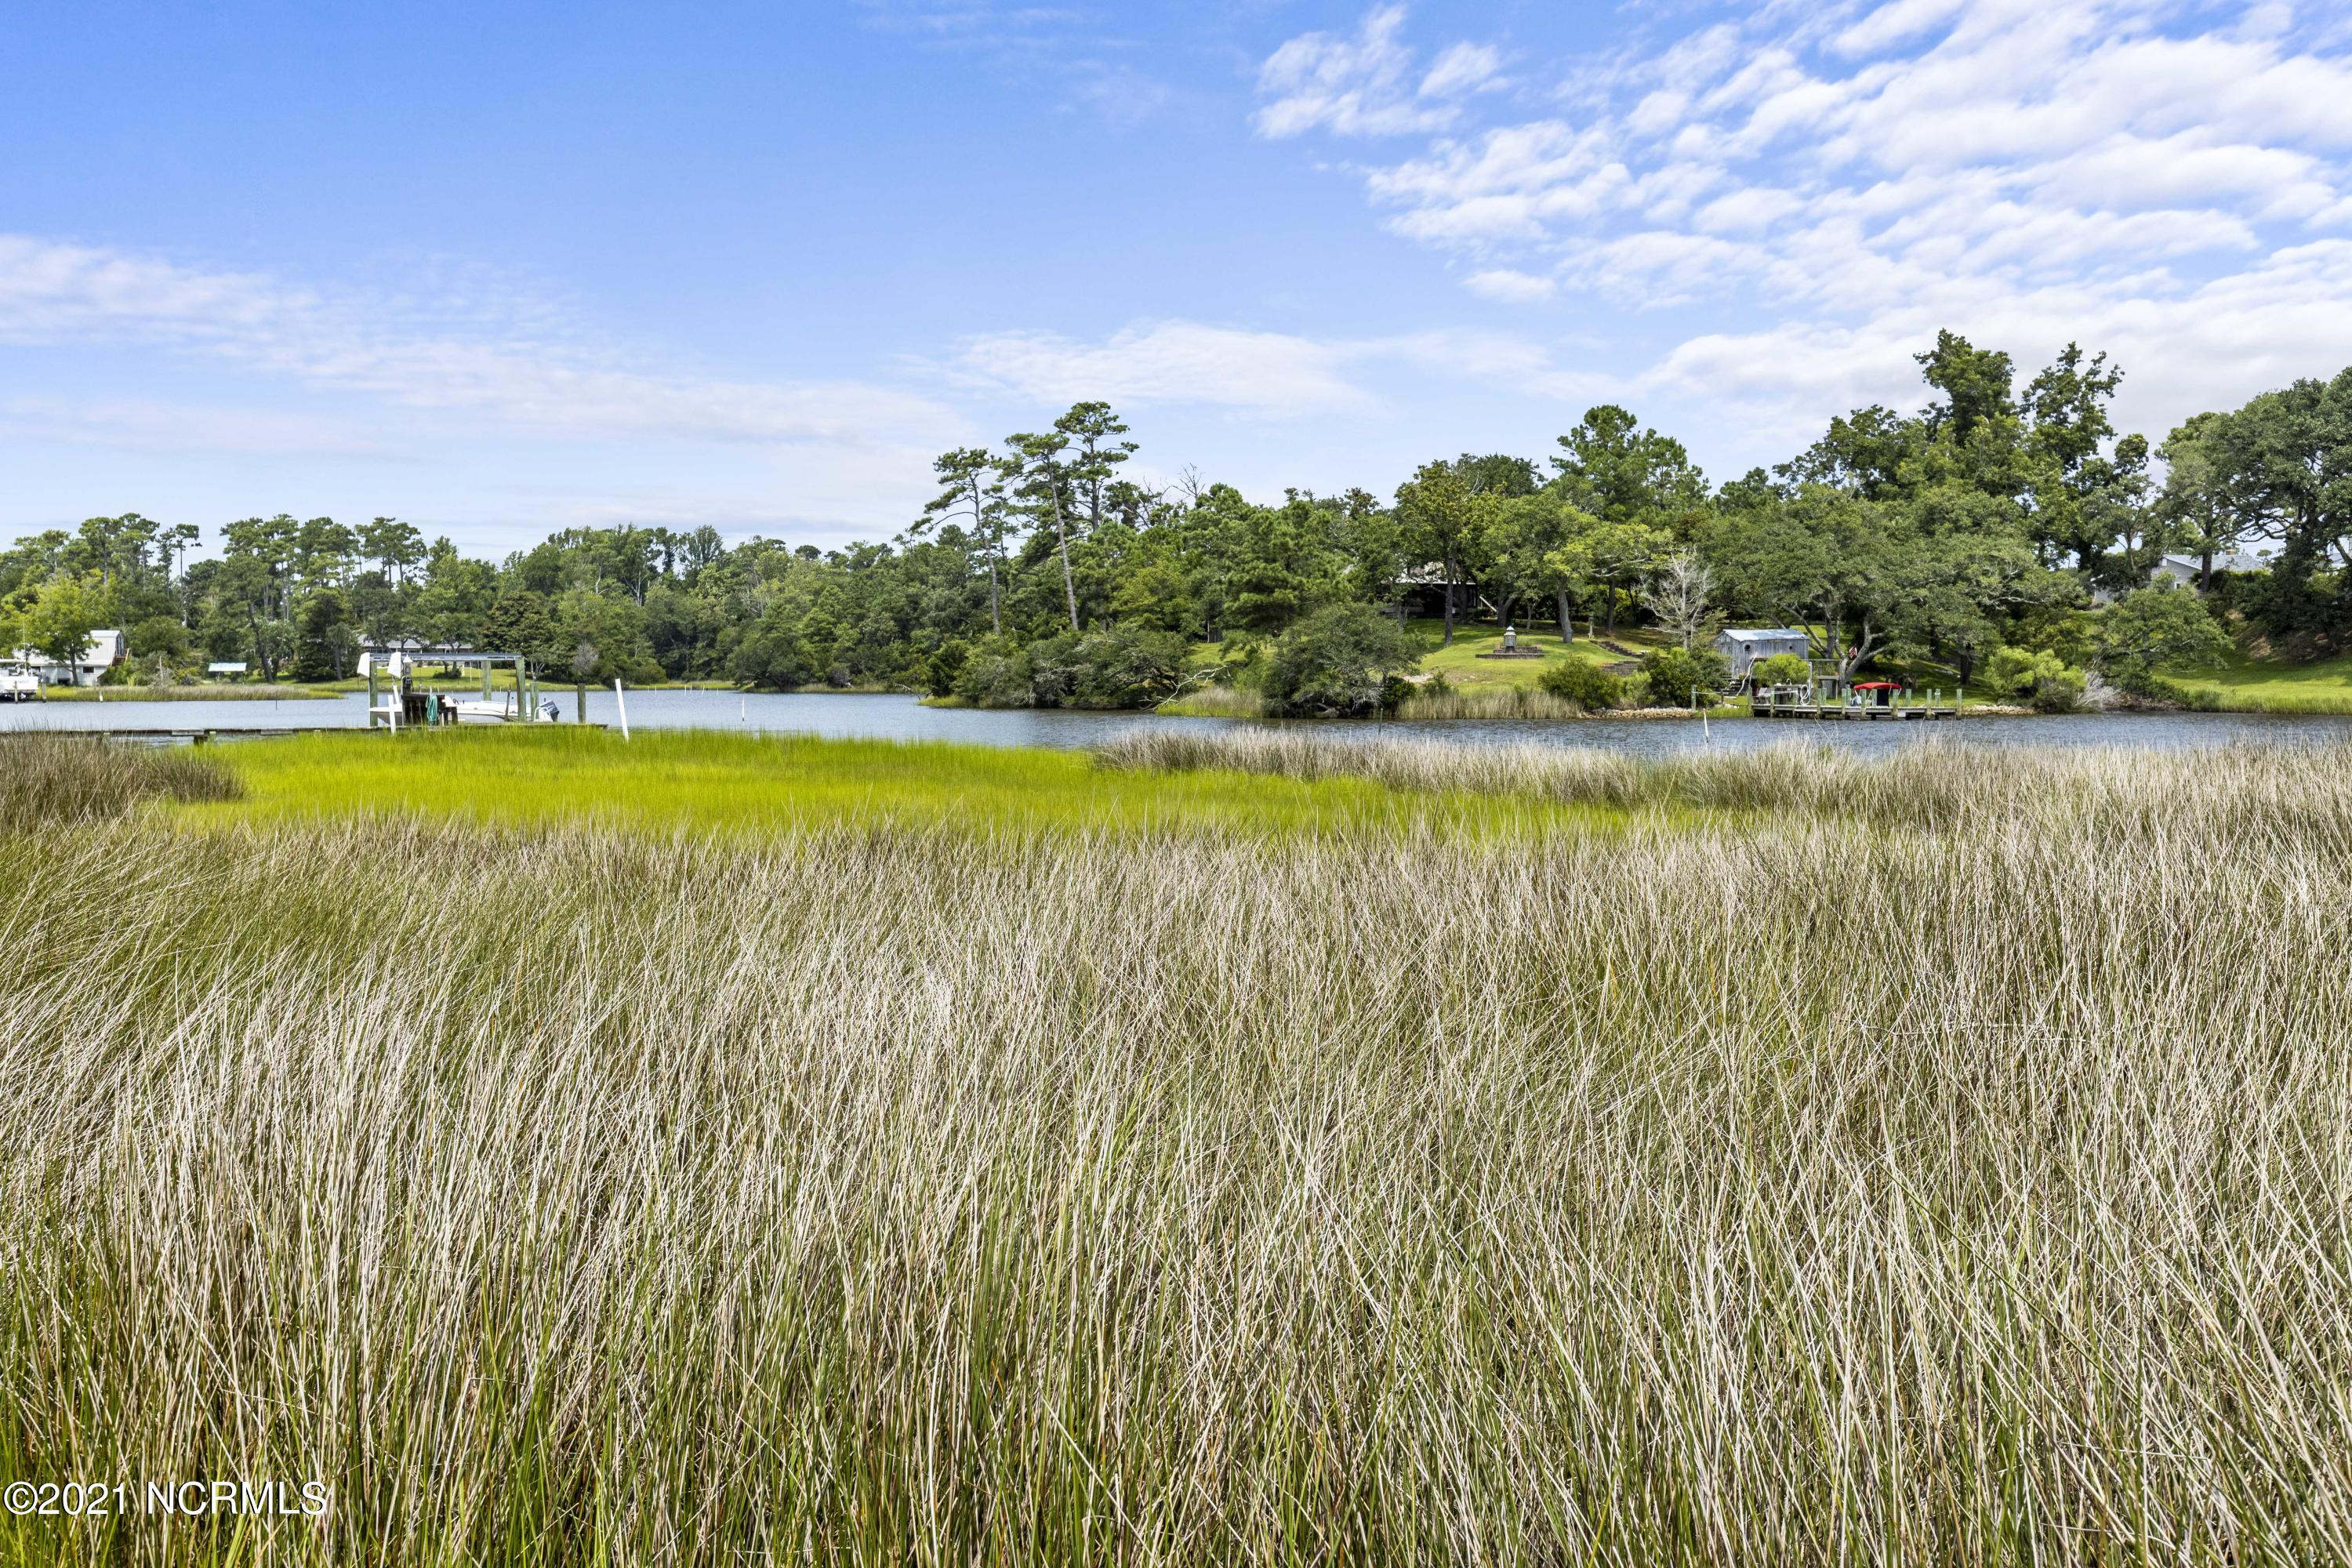 622 Barbour Pt Road, Swansboro, North Carolina 28584, 4 Bedrooms Bedrooms, 8 Rooms Rooms,3 BathroomsBathrooms,Single family residence,For sale,Barbour Pt,100283416